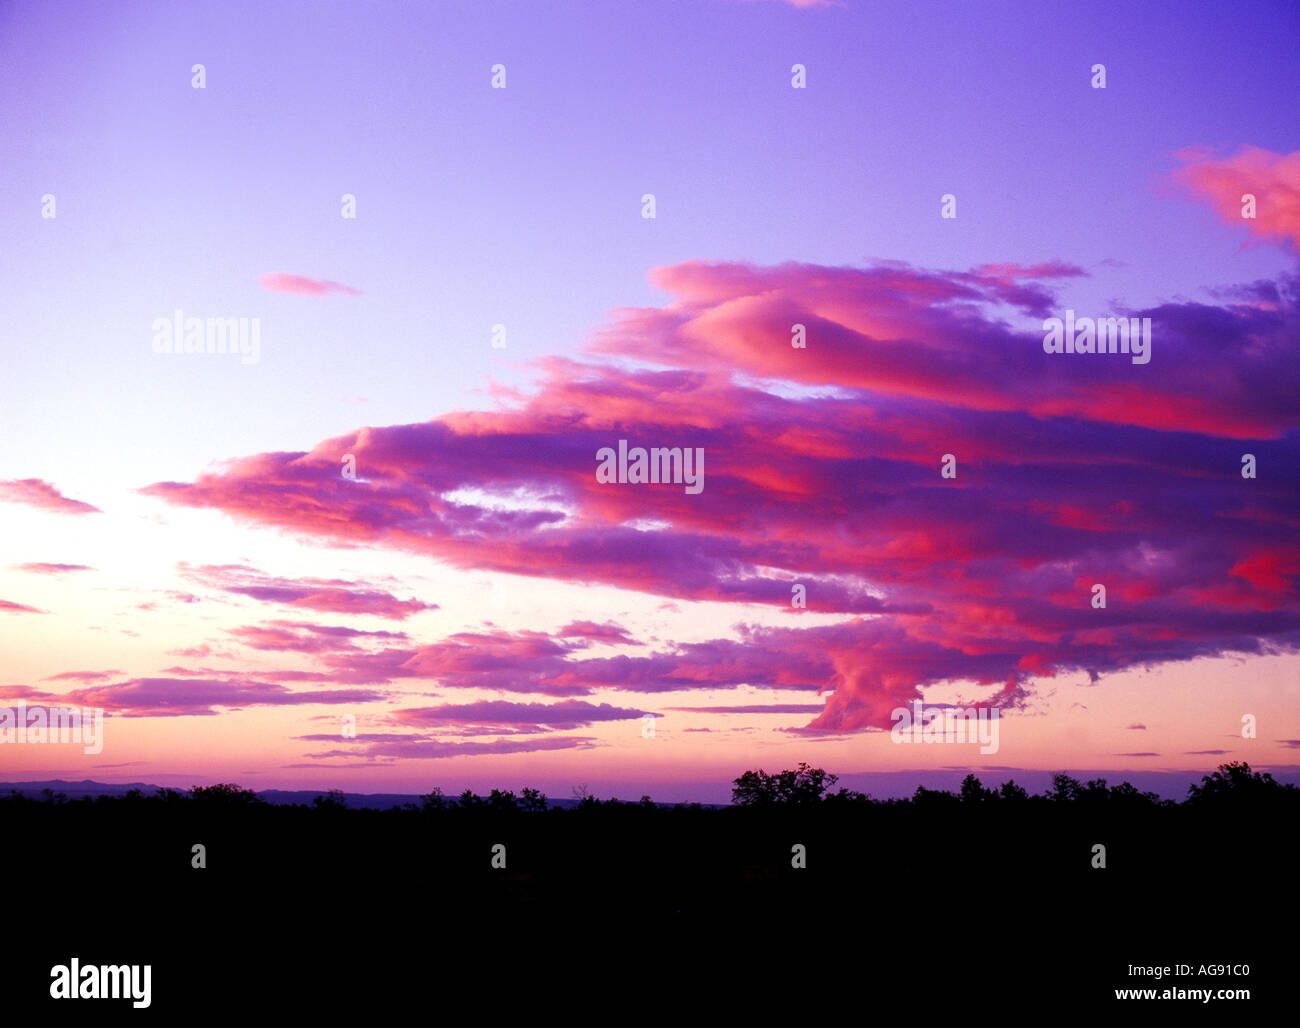 Sky, Sunset, Clouds - Stock Image